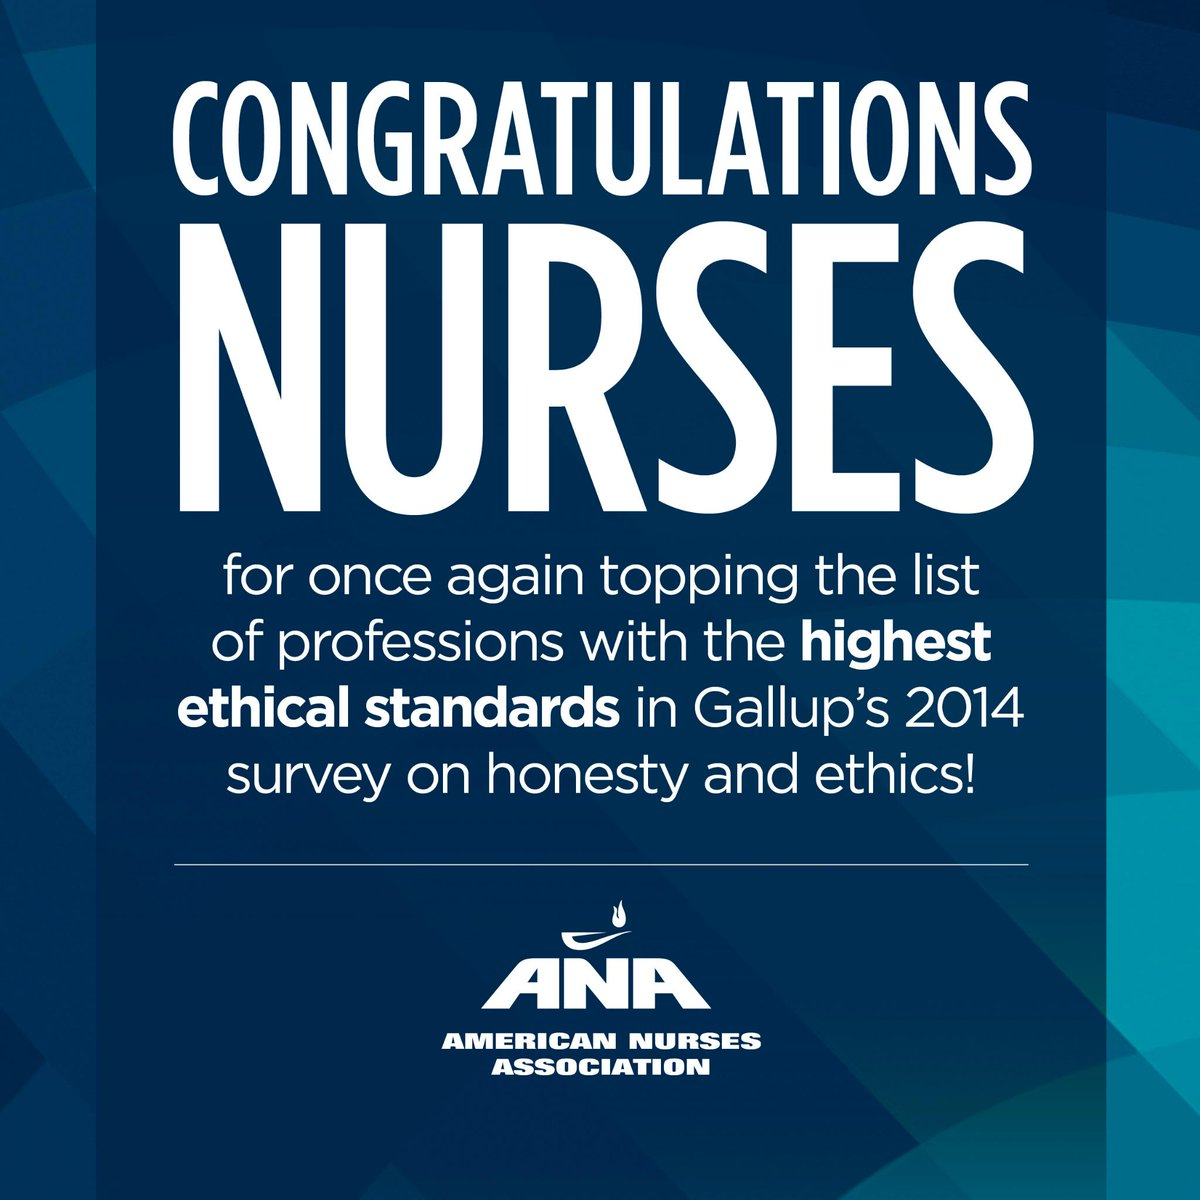 Congrats nurses for being a part of the most trusted profession! http://t.co/kJw60HxKtW